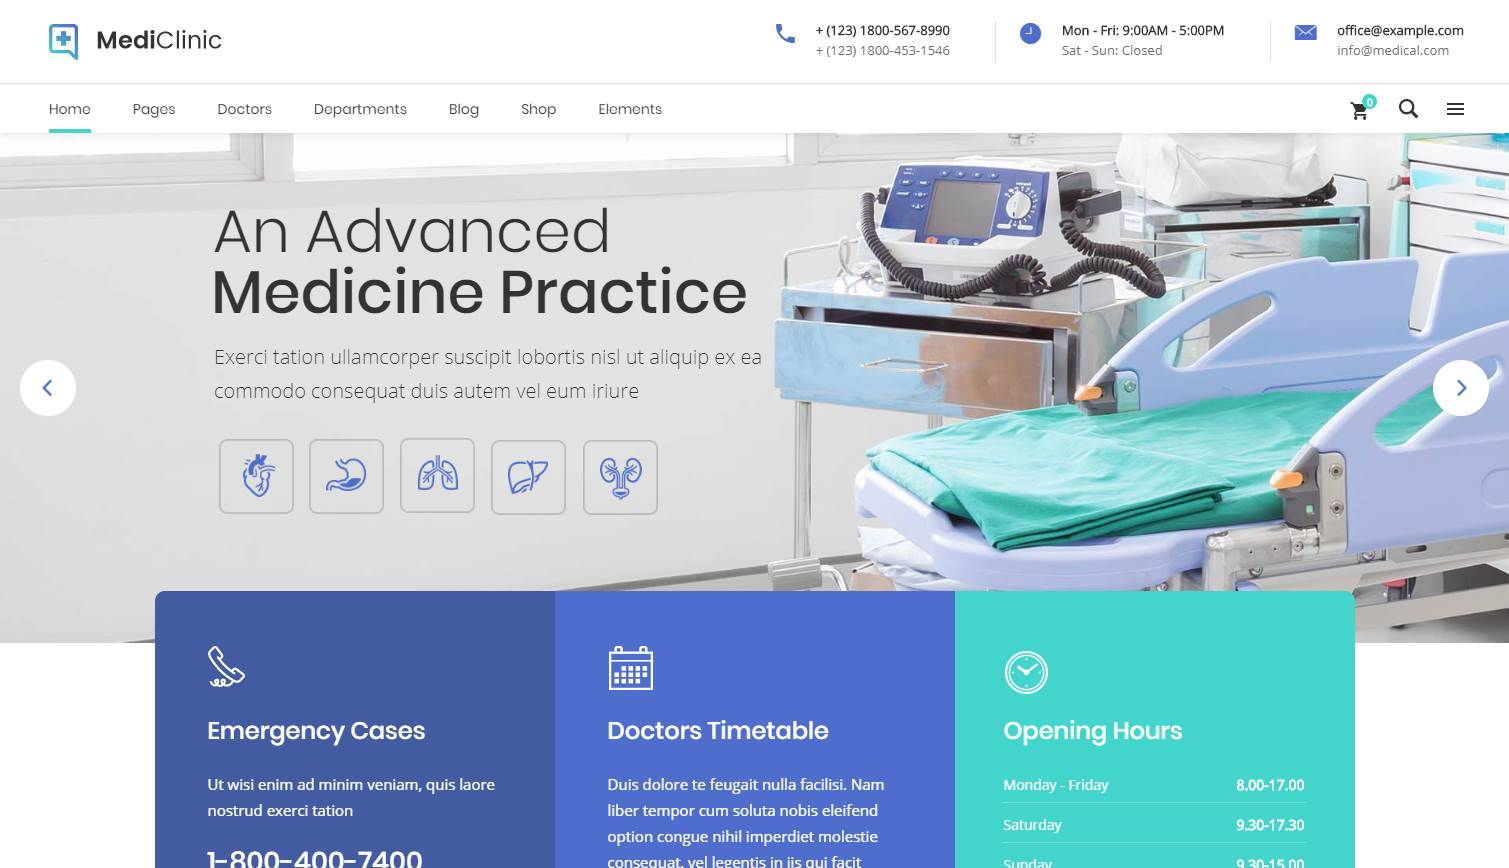 Mediclinic Premium Wordpress Template